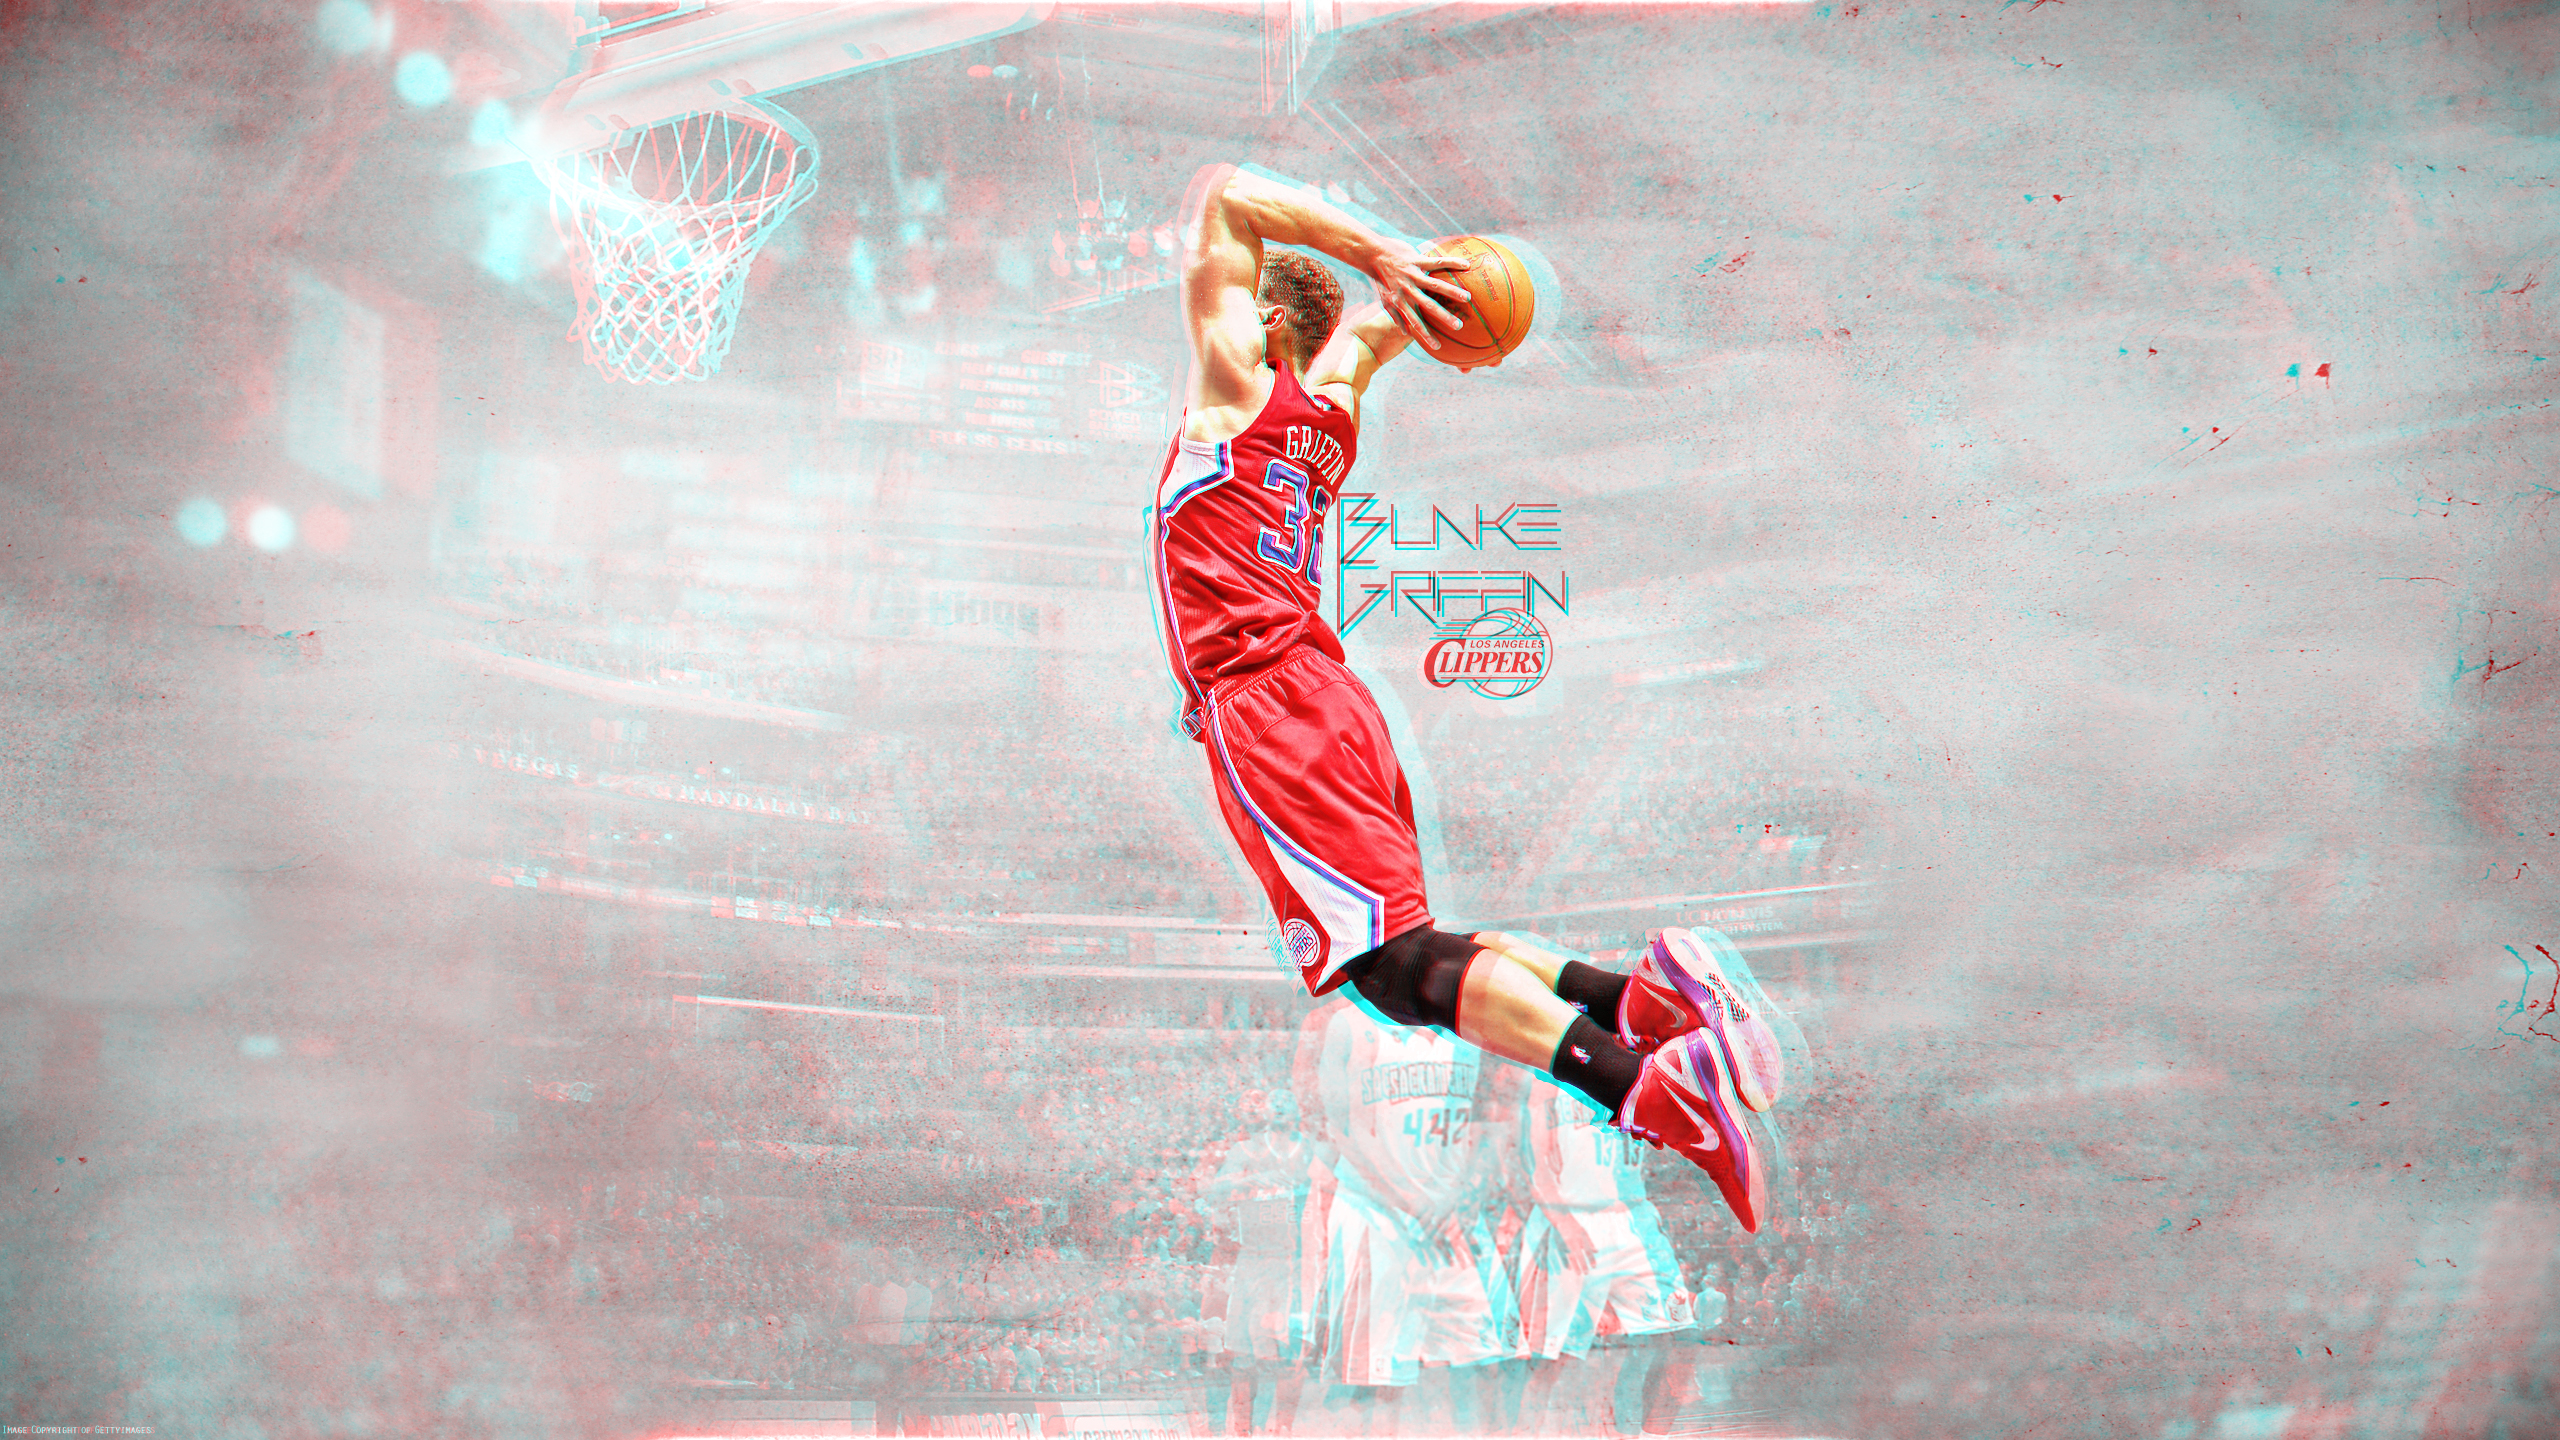 Top Free Dope Nba Backgrounds: Message Board Basketball Forum